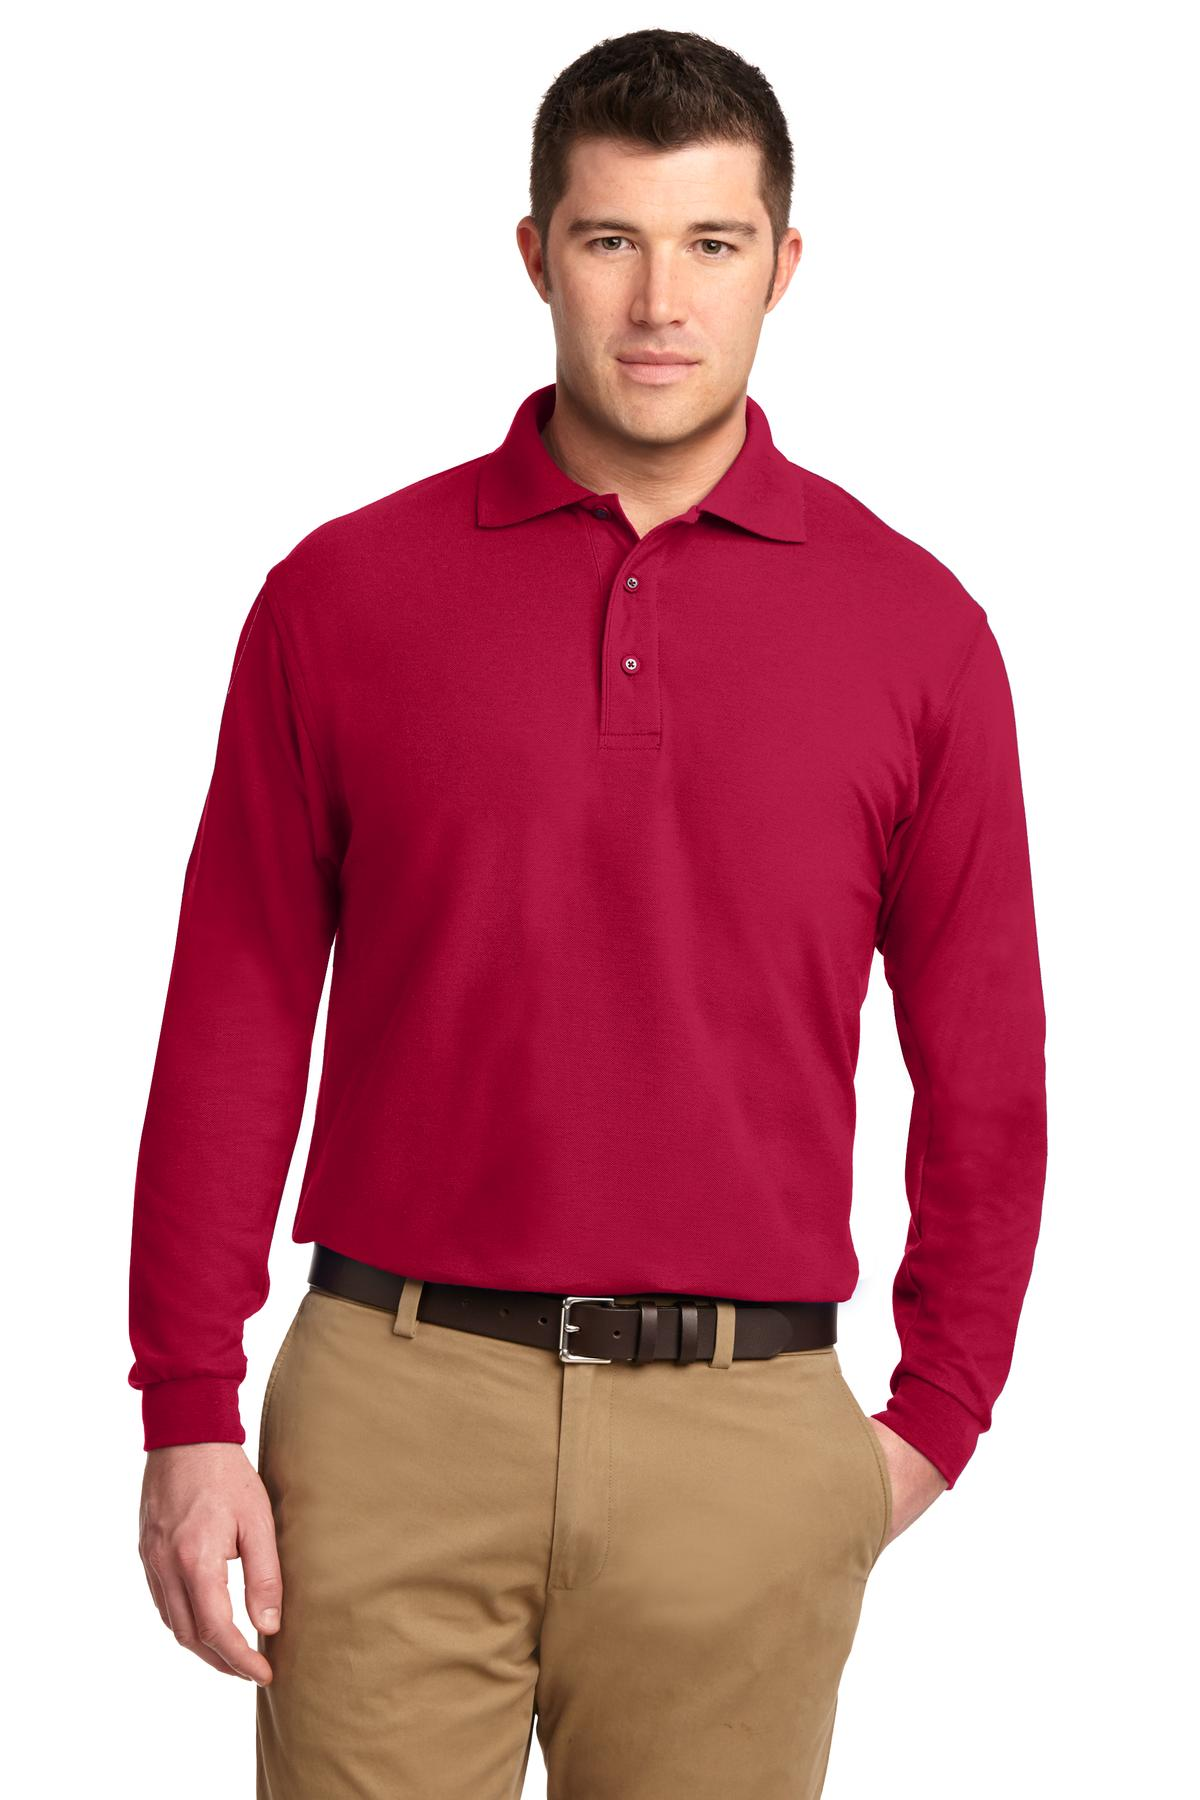 Port Authority ®  Silk Touch™ Long Sleeve Polo.  K500LS - Red